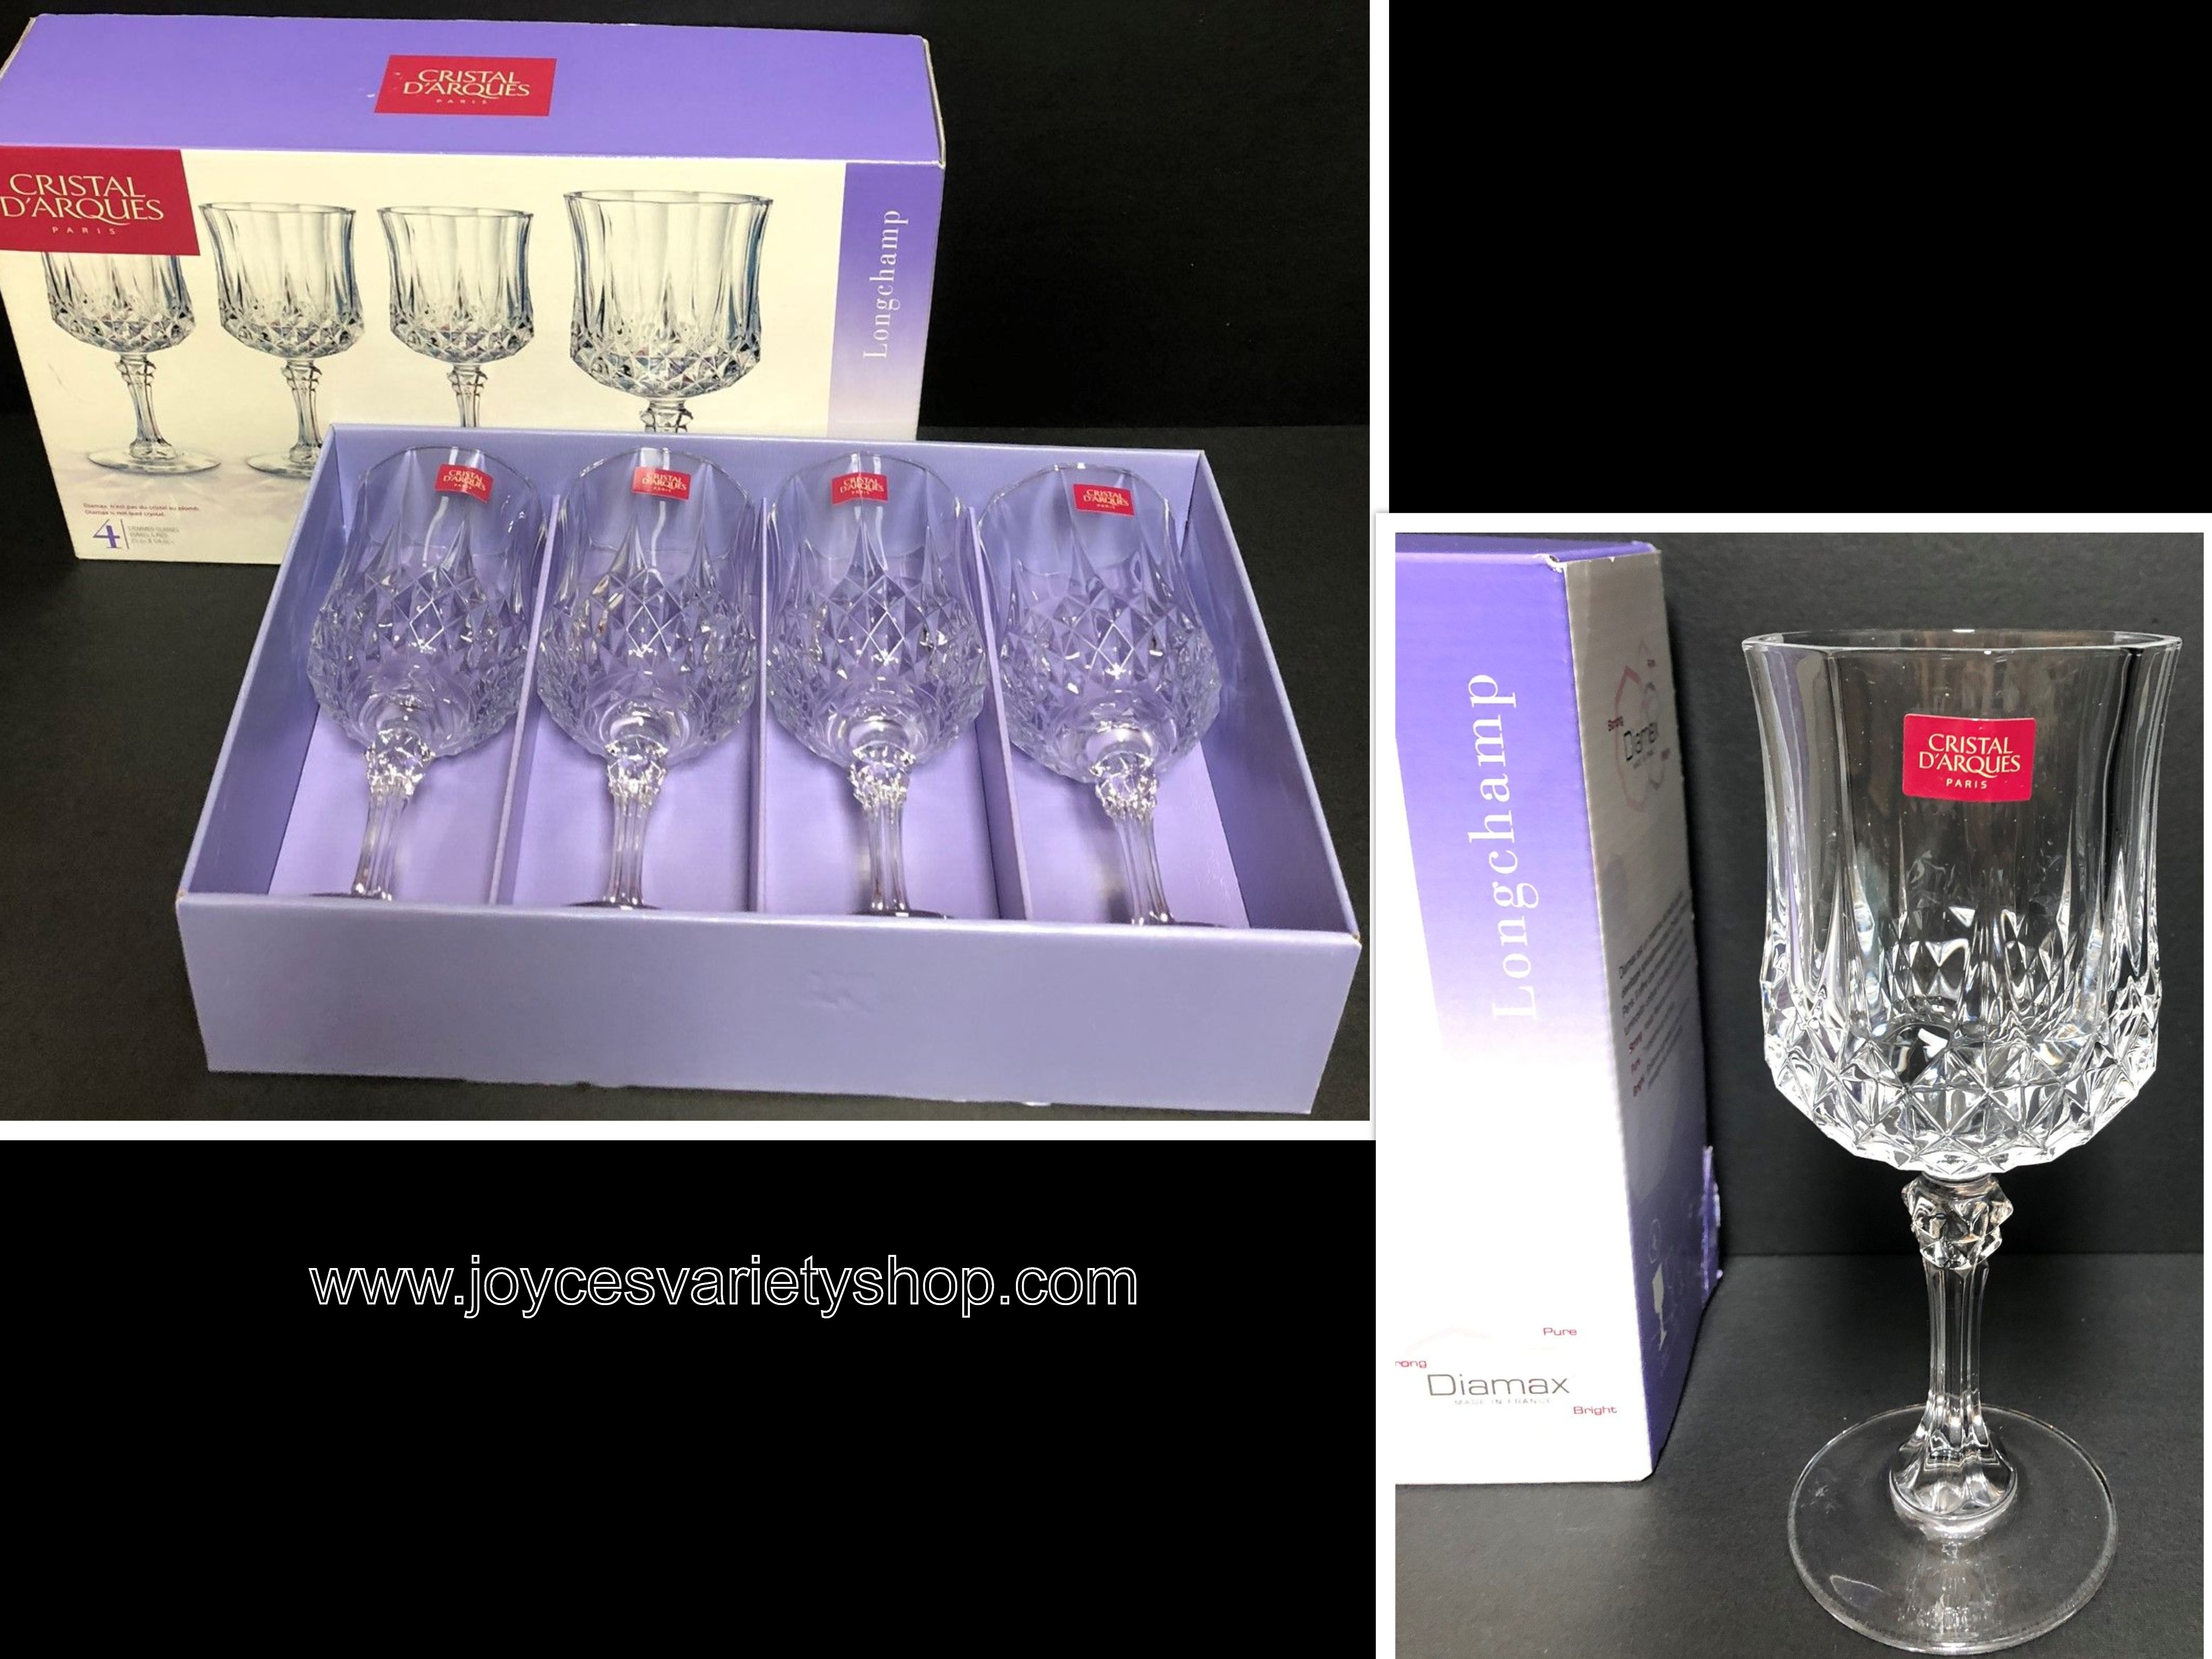 Cristal D'Arques Diamex 8 Oz Stemmed Wine Glasses Set of 4 Clear